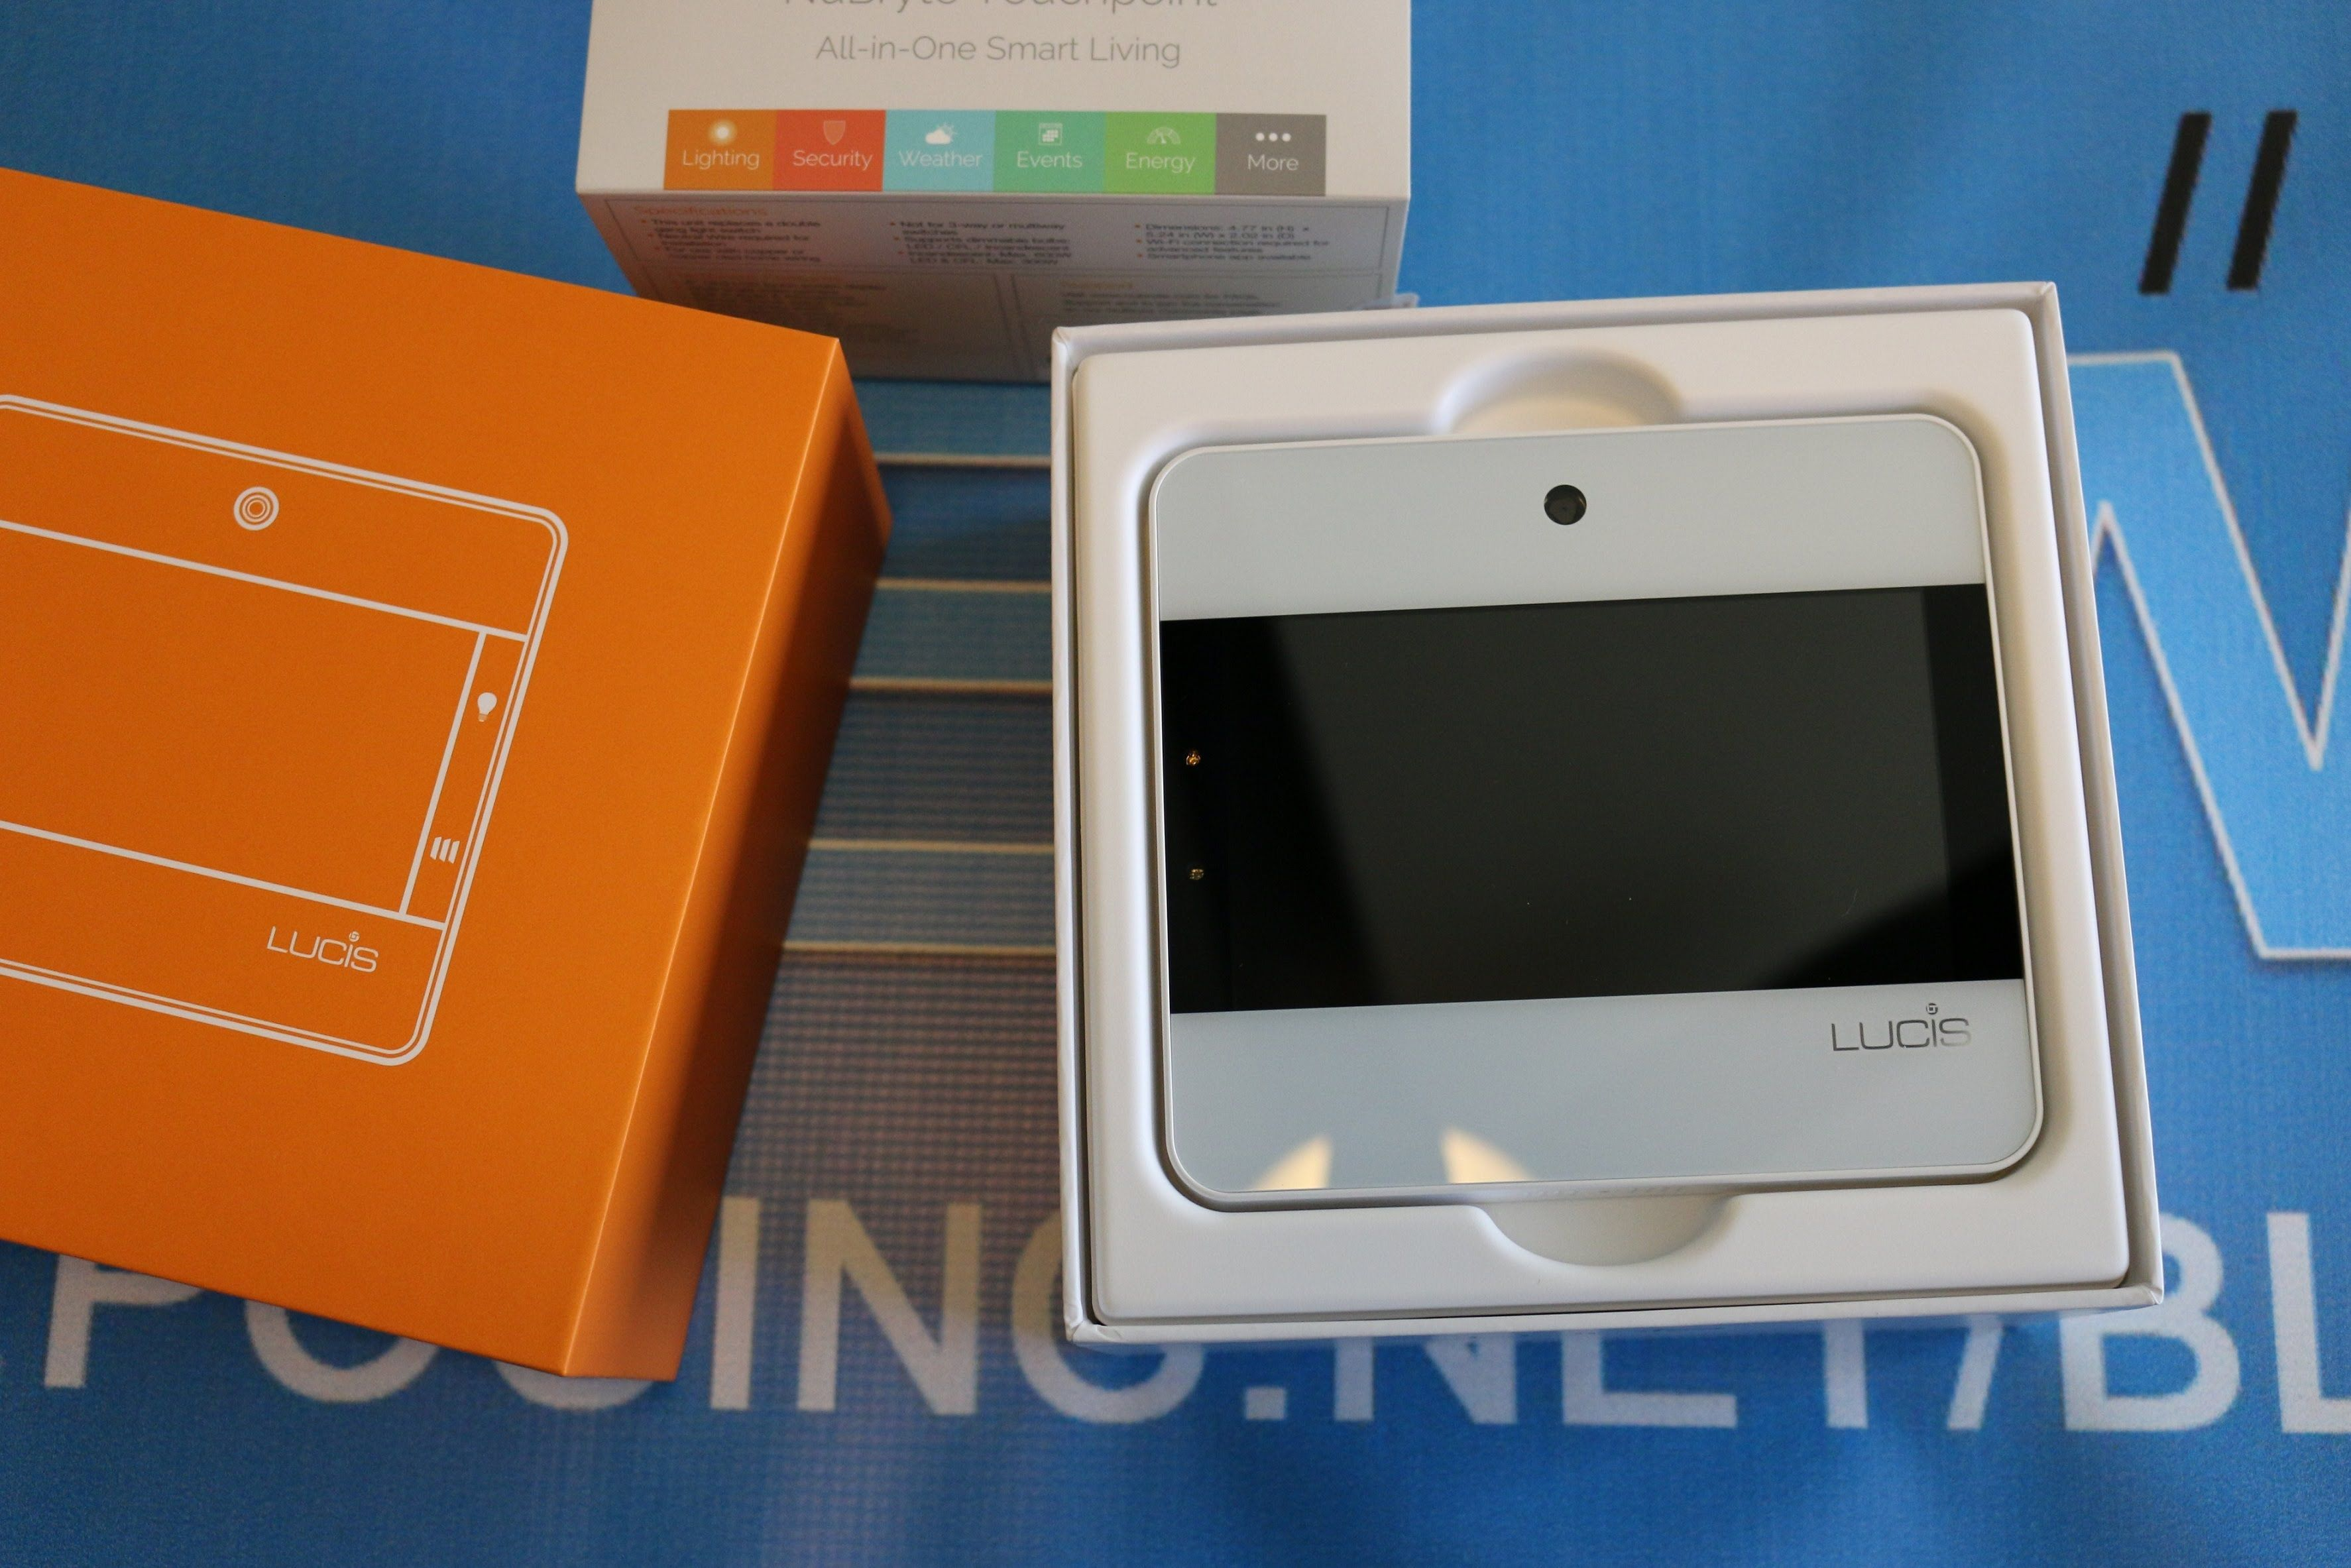 NuBryte Replaces Light Switches To Create Smart Home My NuBryte Day